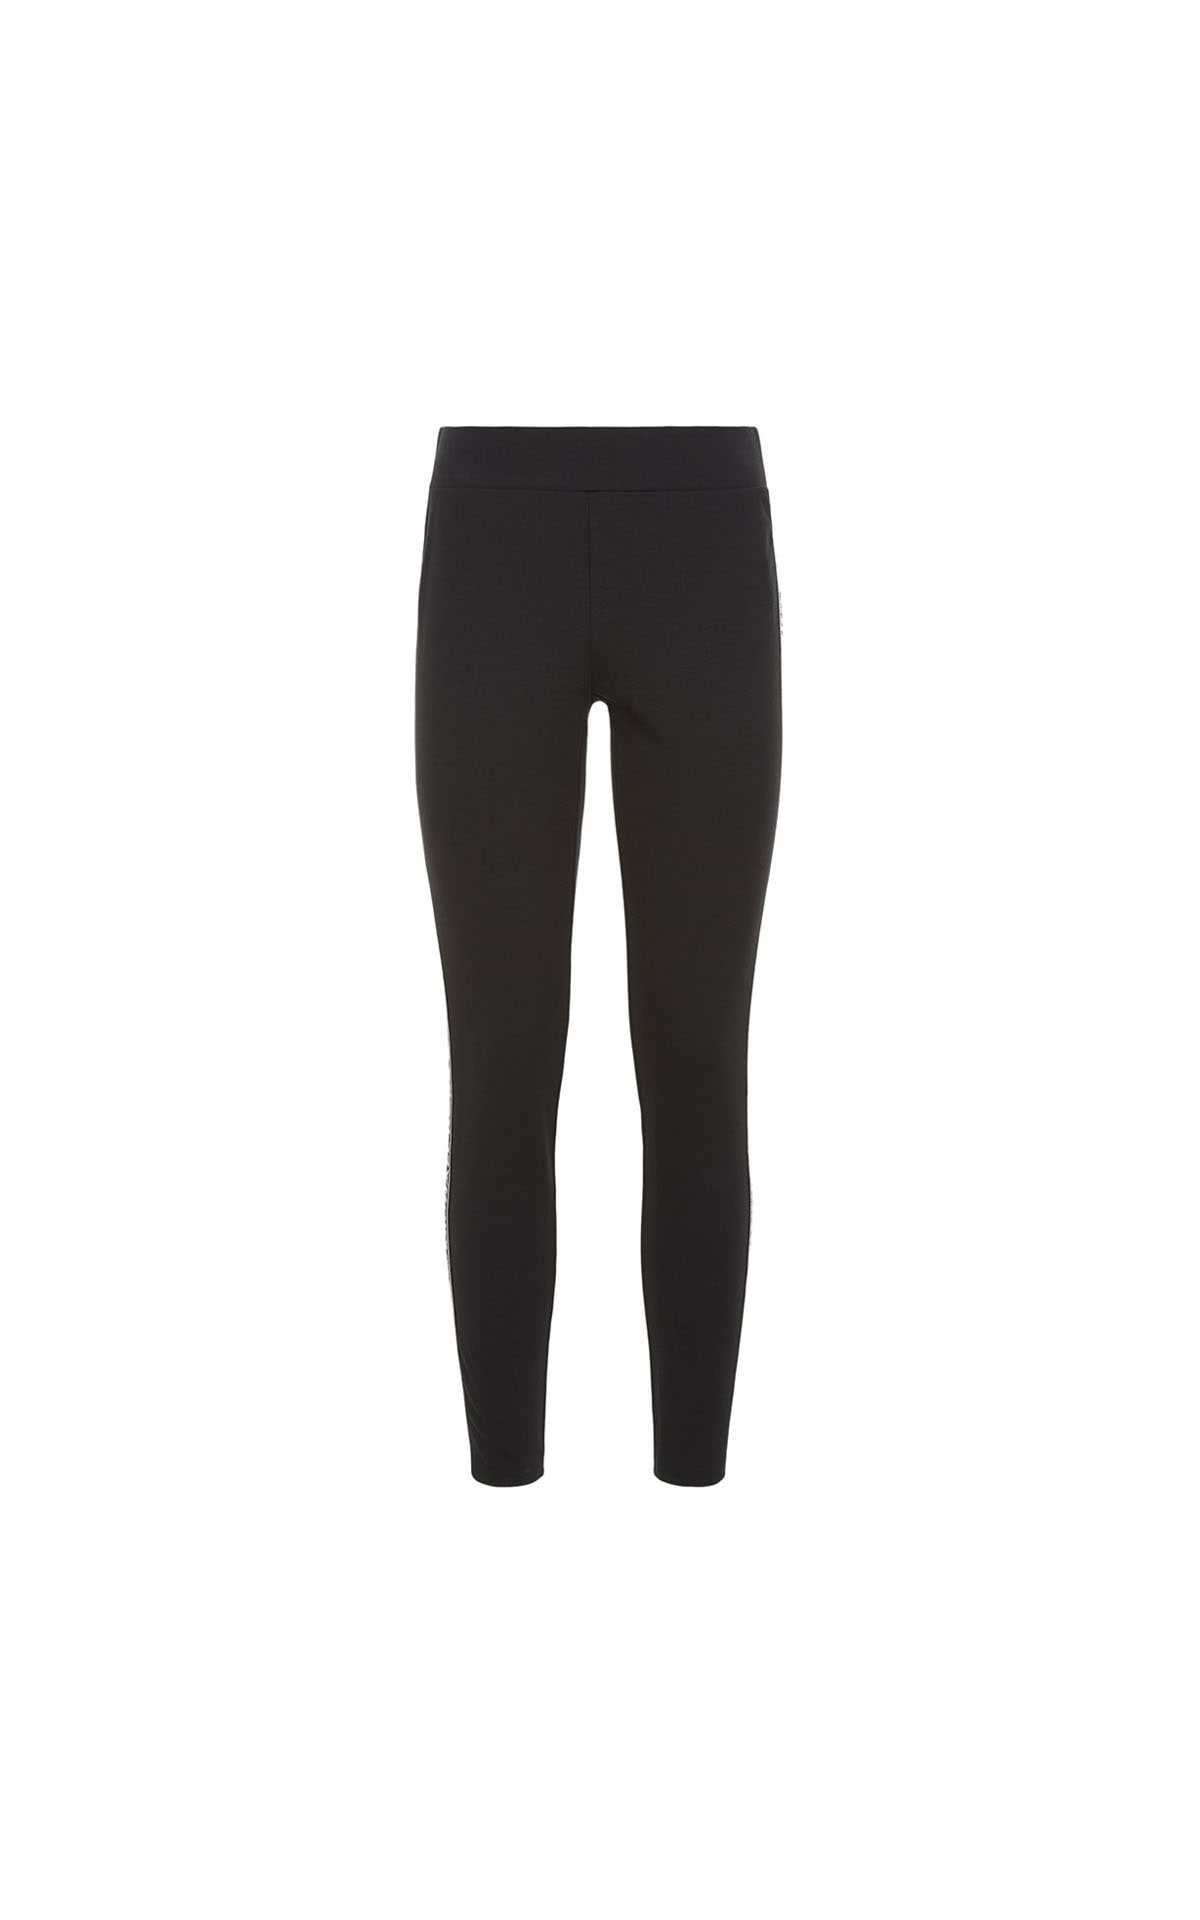 Michael Kors Athleisure Tights Outlet